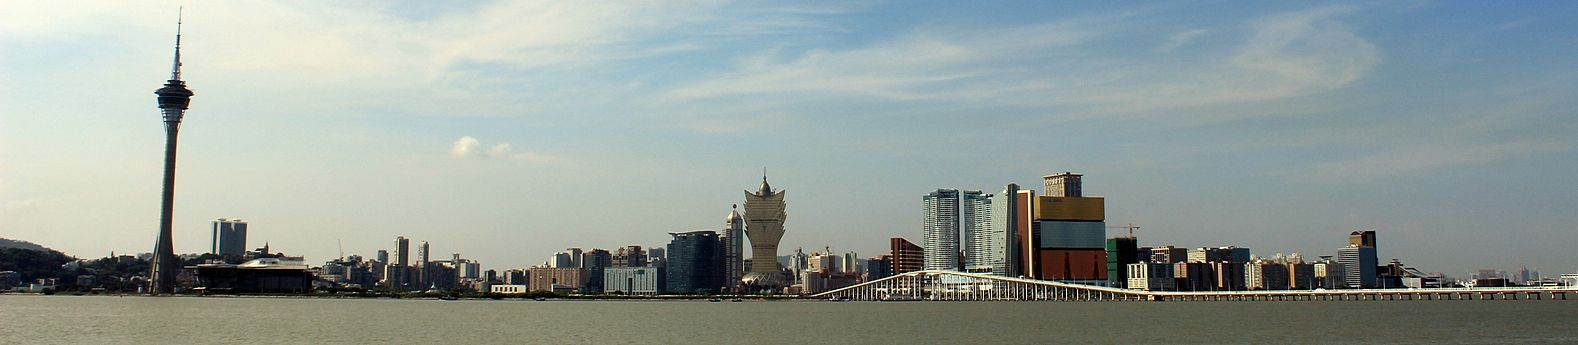 https://upload.wikimedia.org/wikipedia/commons/thumb/6/6c/Macau_skyline_2013_%28panorama%29.JPG/1578px-Macau_skyline_2013_%28panorama%29.JPG